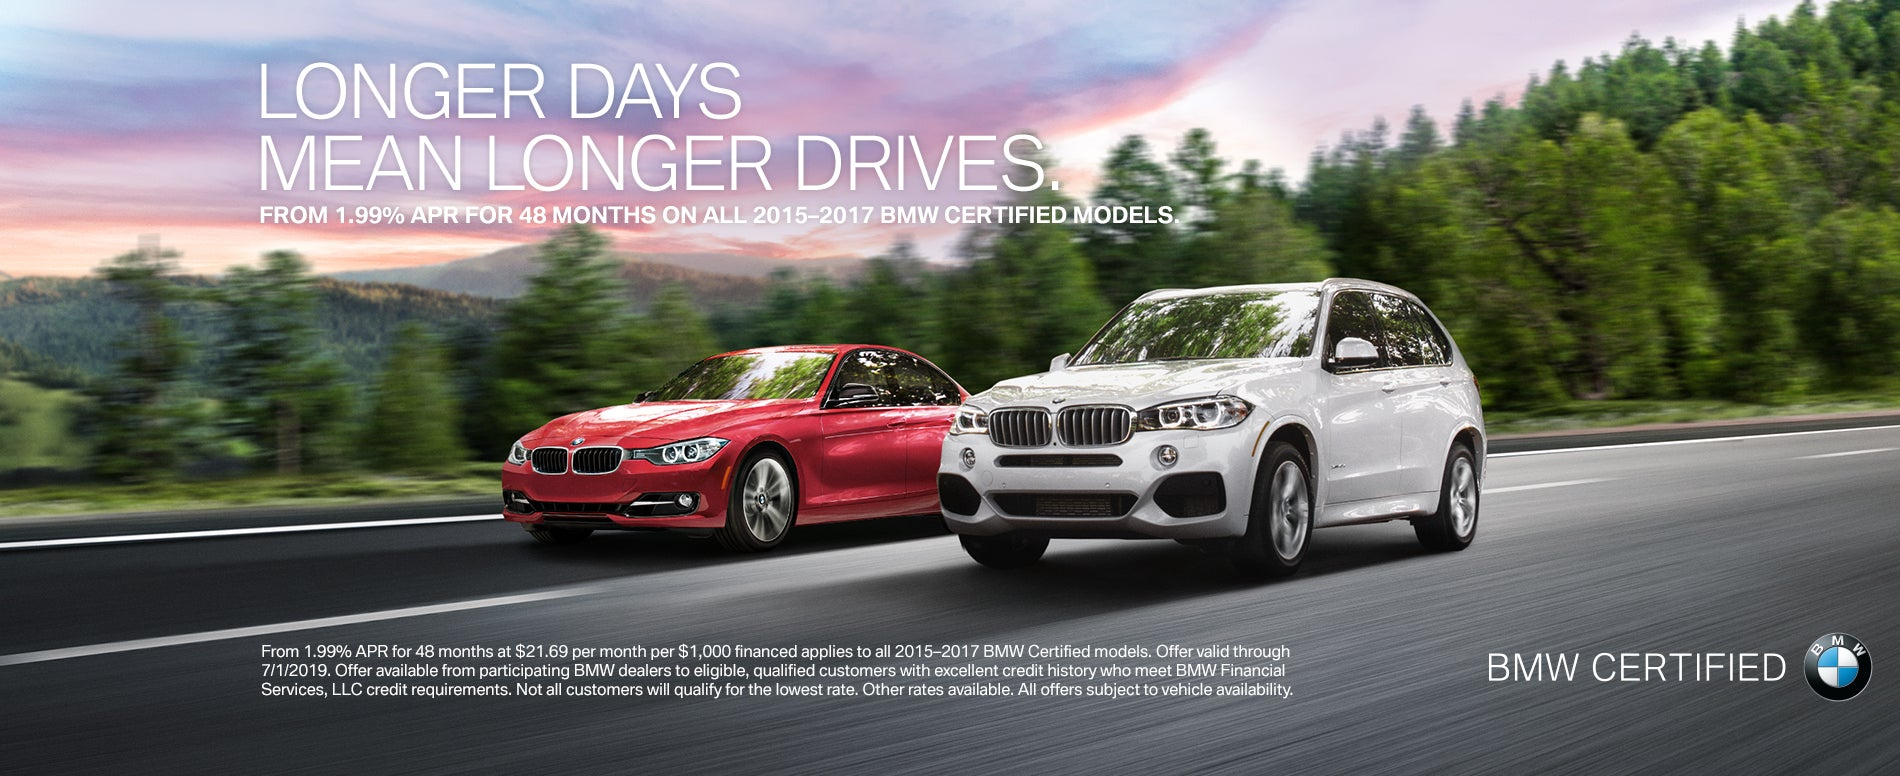 Car Dealerships In Durham Nc >> Bmw Dealer In Raleigh Nc New Used Bmw Cars Suvs Cary Durham